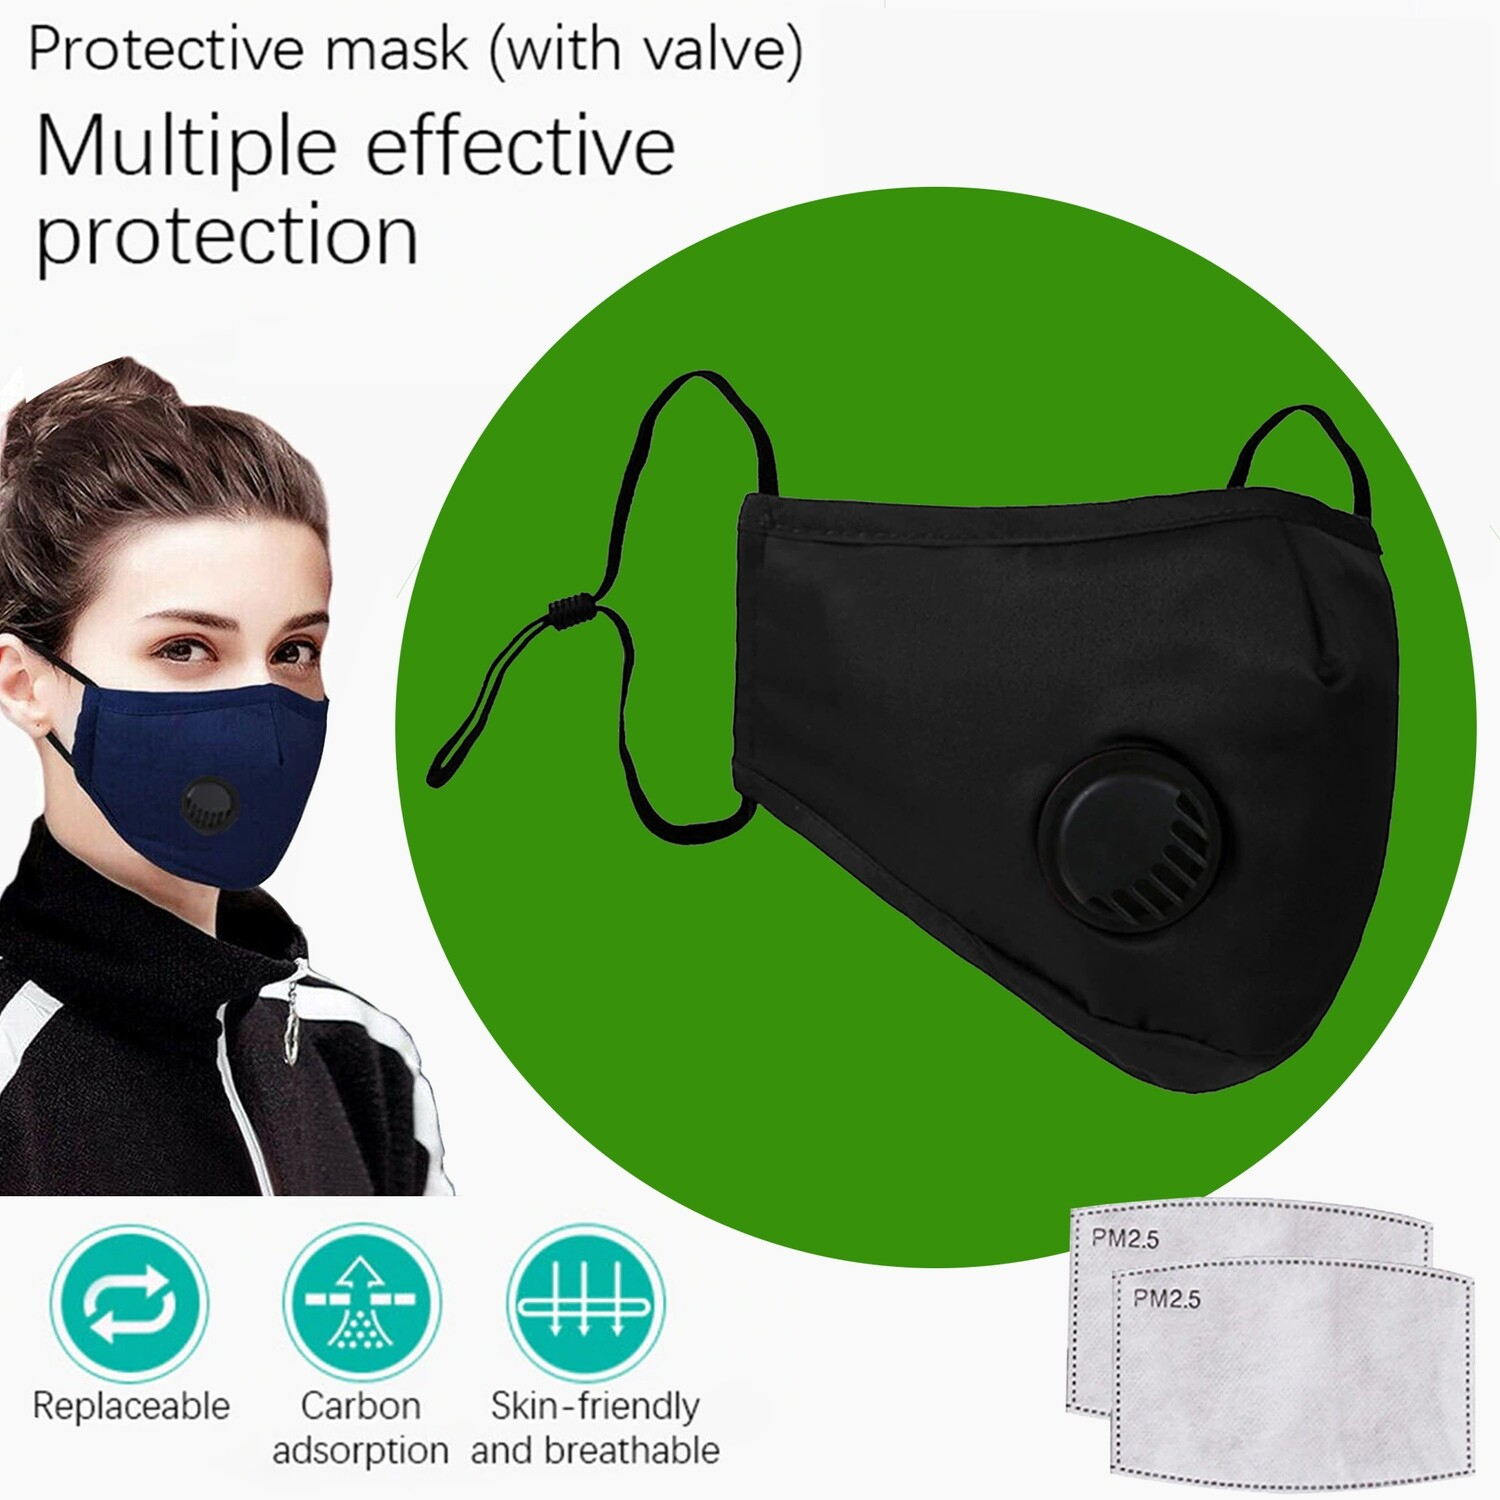 Black Face Mask with breath valve plus two replaceable PM2.5 Filters. Washable and reusable.